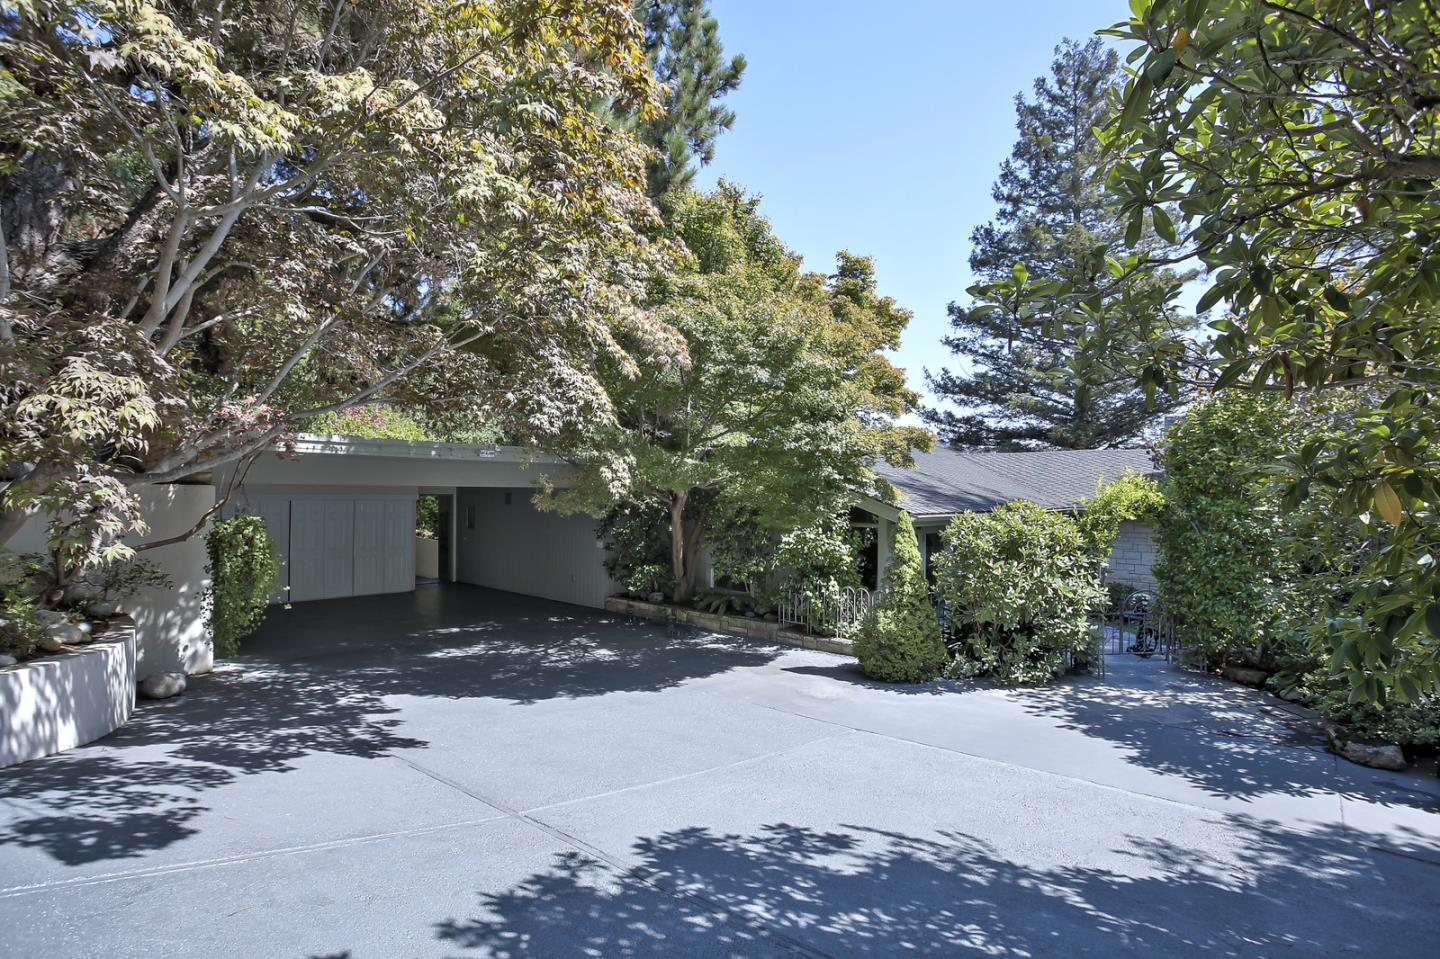 Single Family Home for Sale at 108 Dudley Avenue 108 Dudley Avenue Piedmont, California 94611 United States